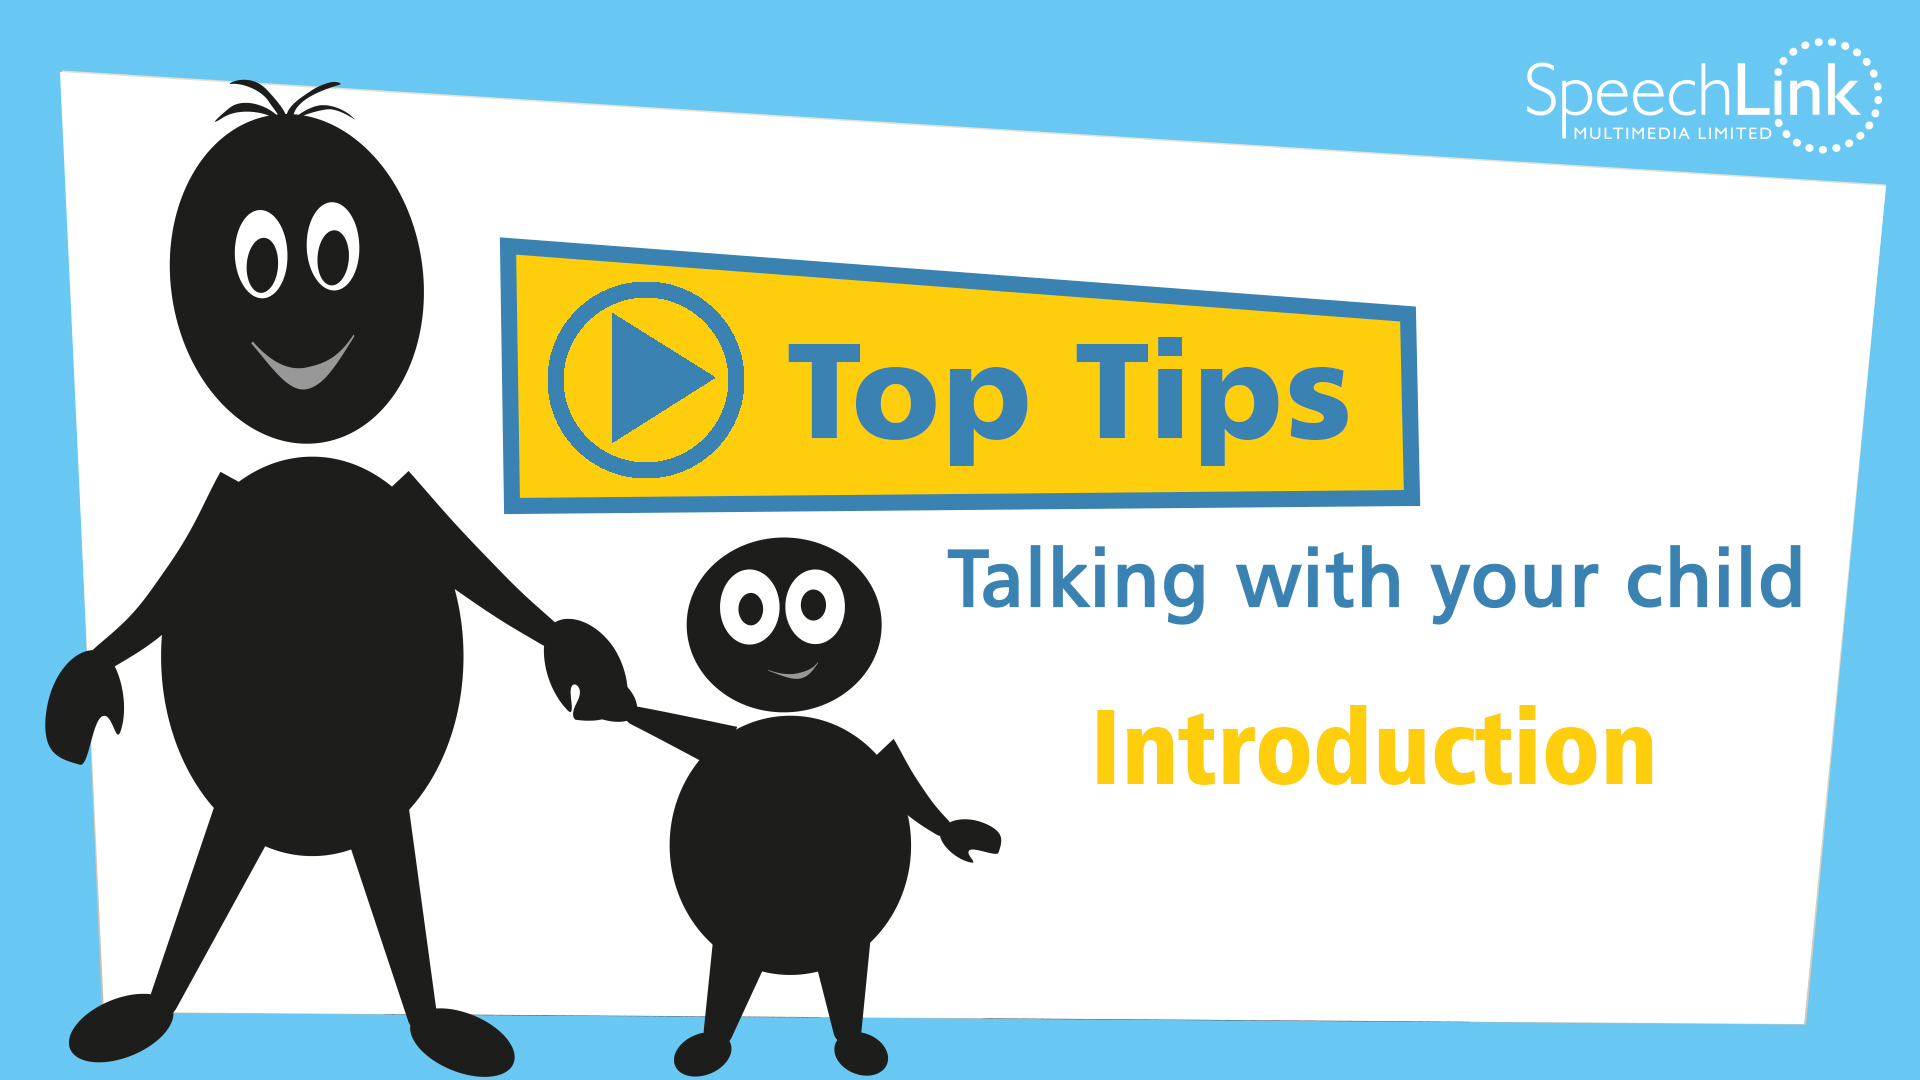 Top Tips, talking with your child introduction